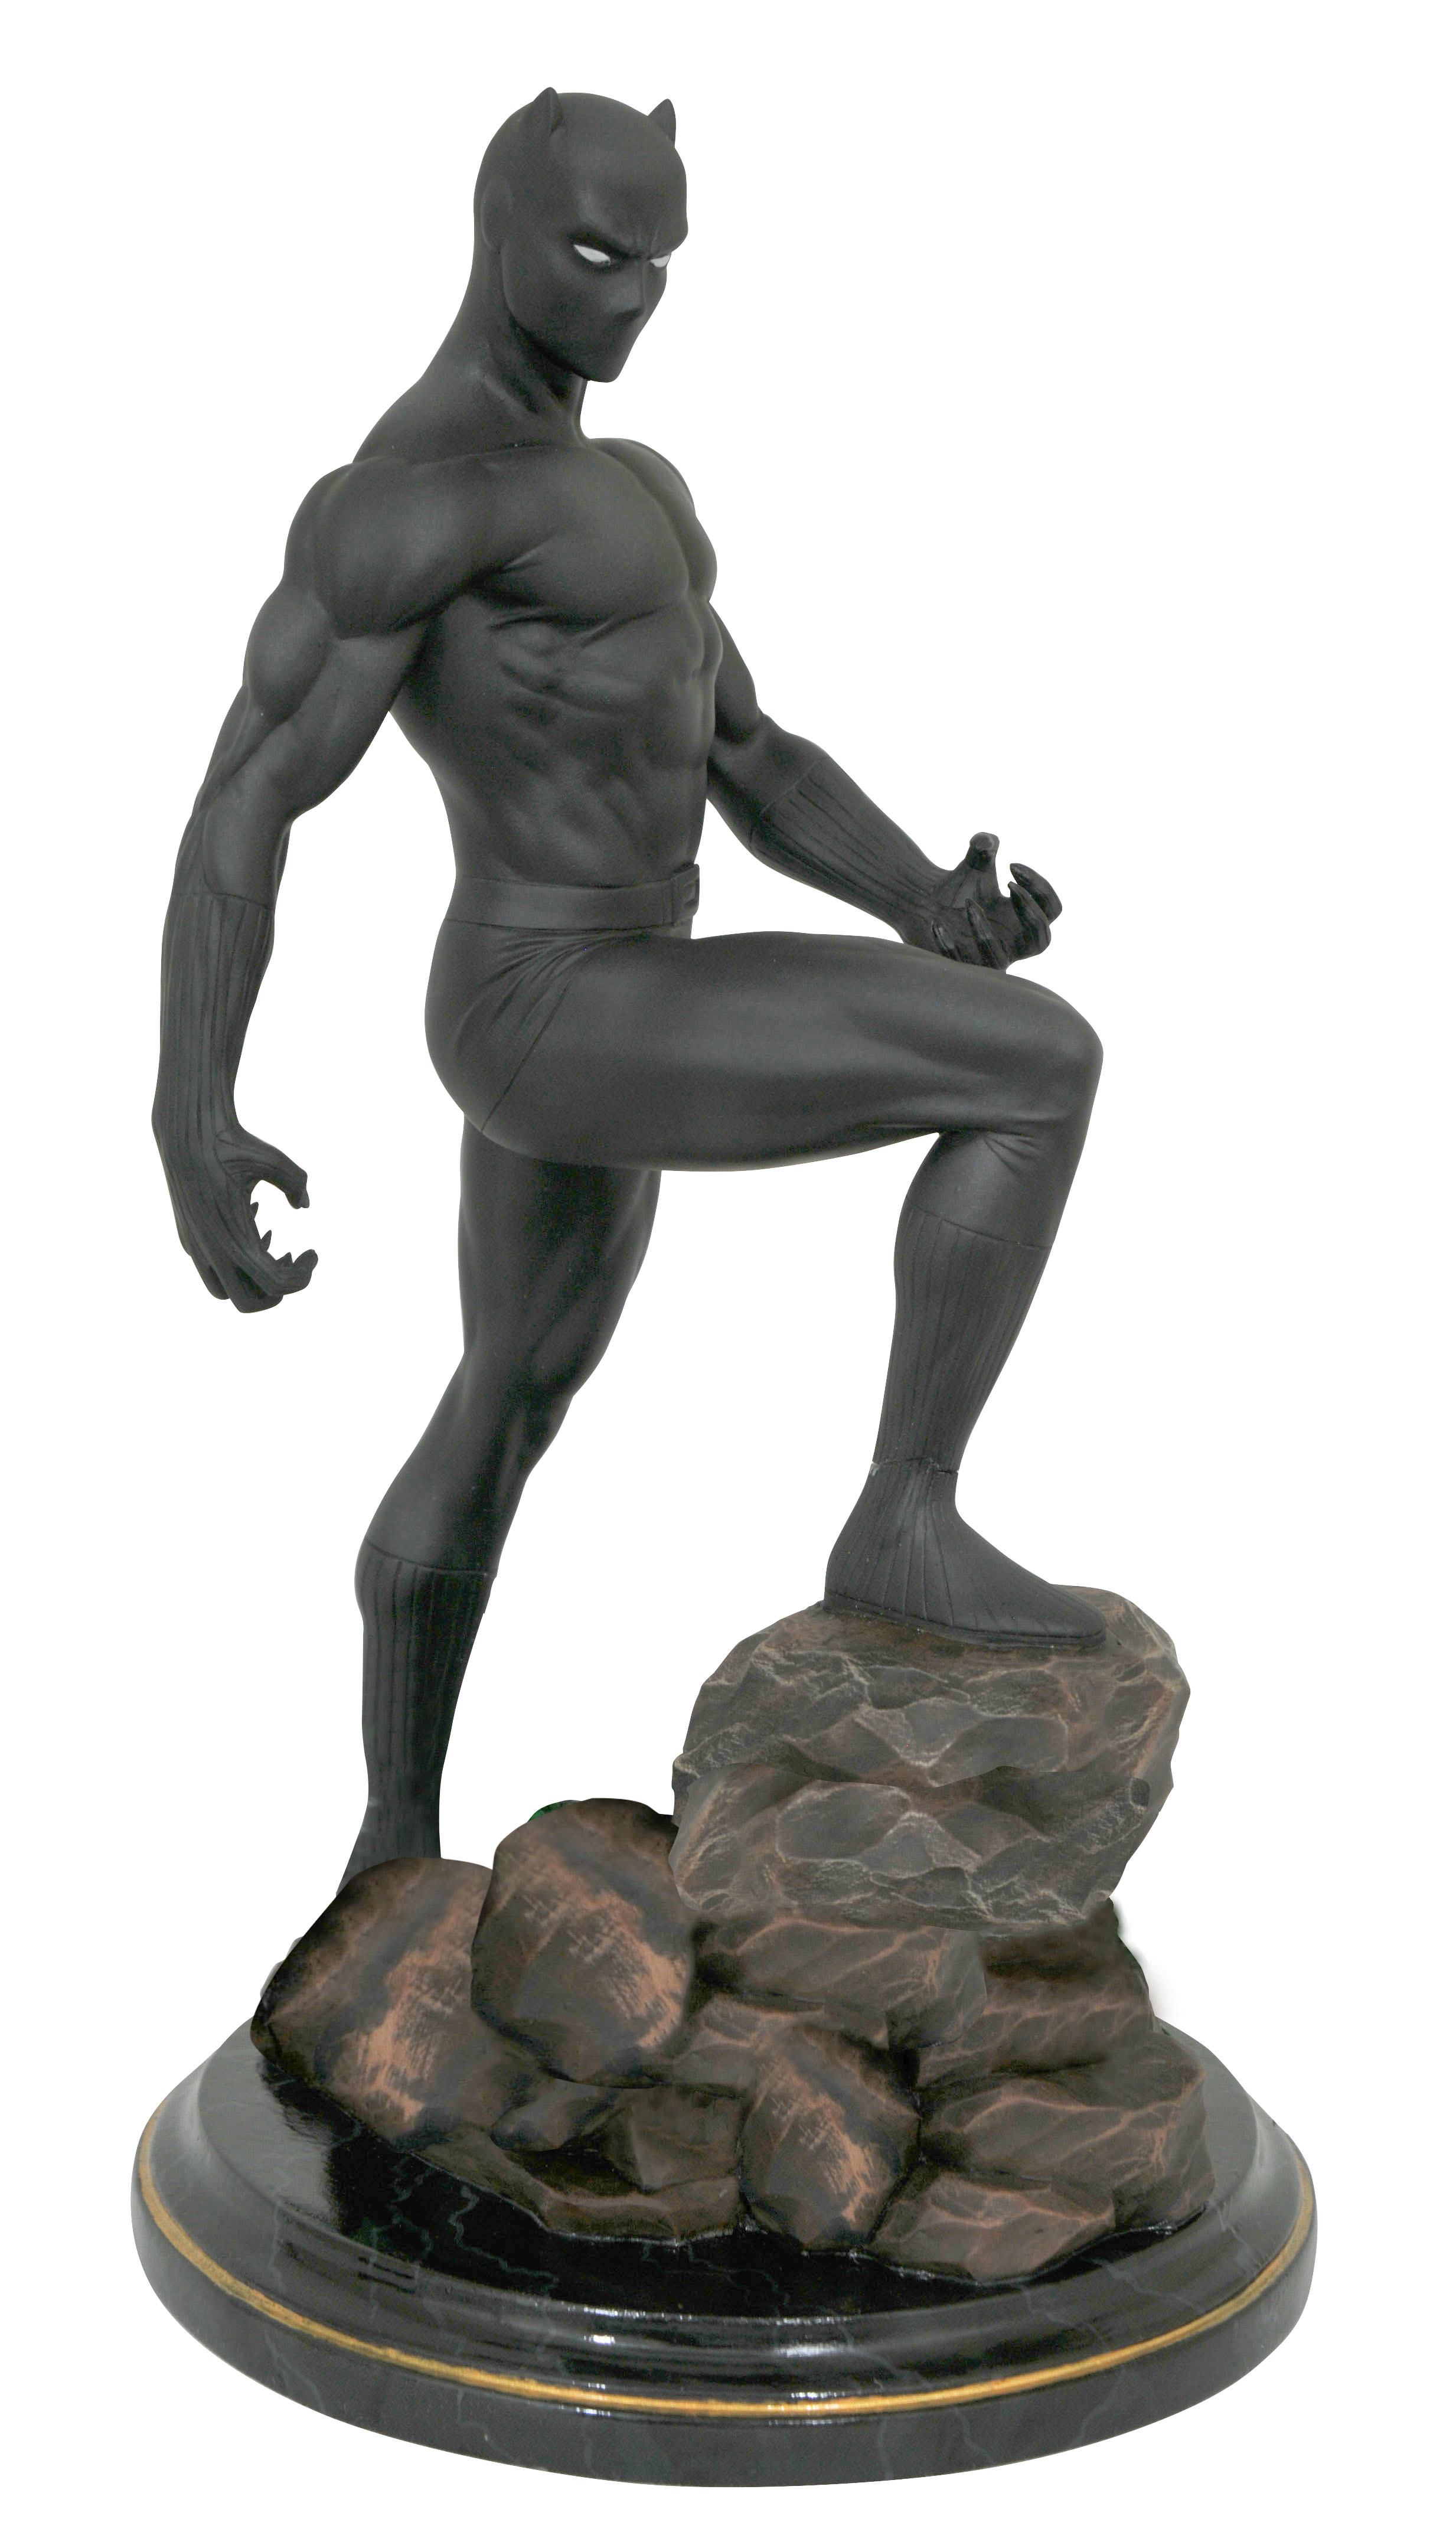 MARVEL PREMIER COLLECTION COMIC BLACK PANTHER STATUE